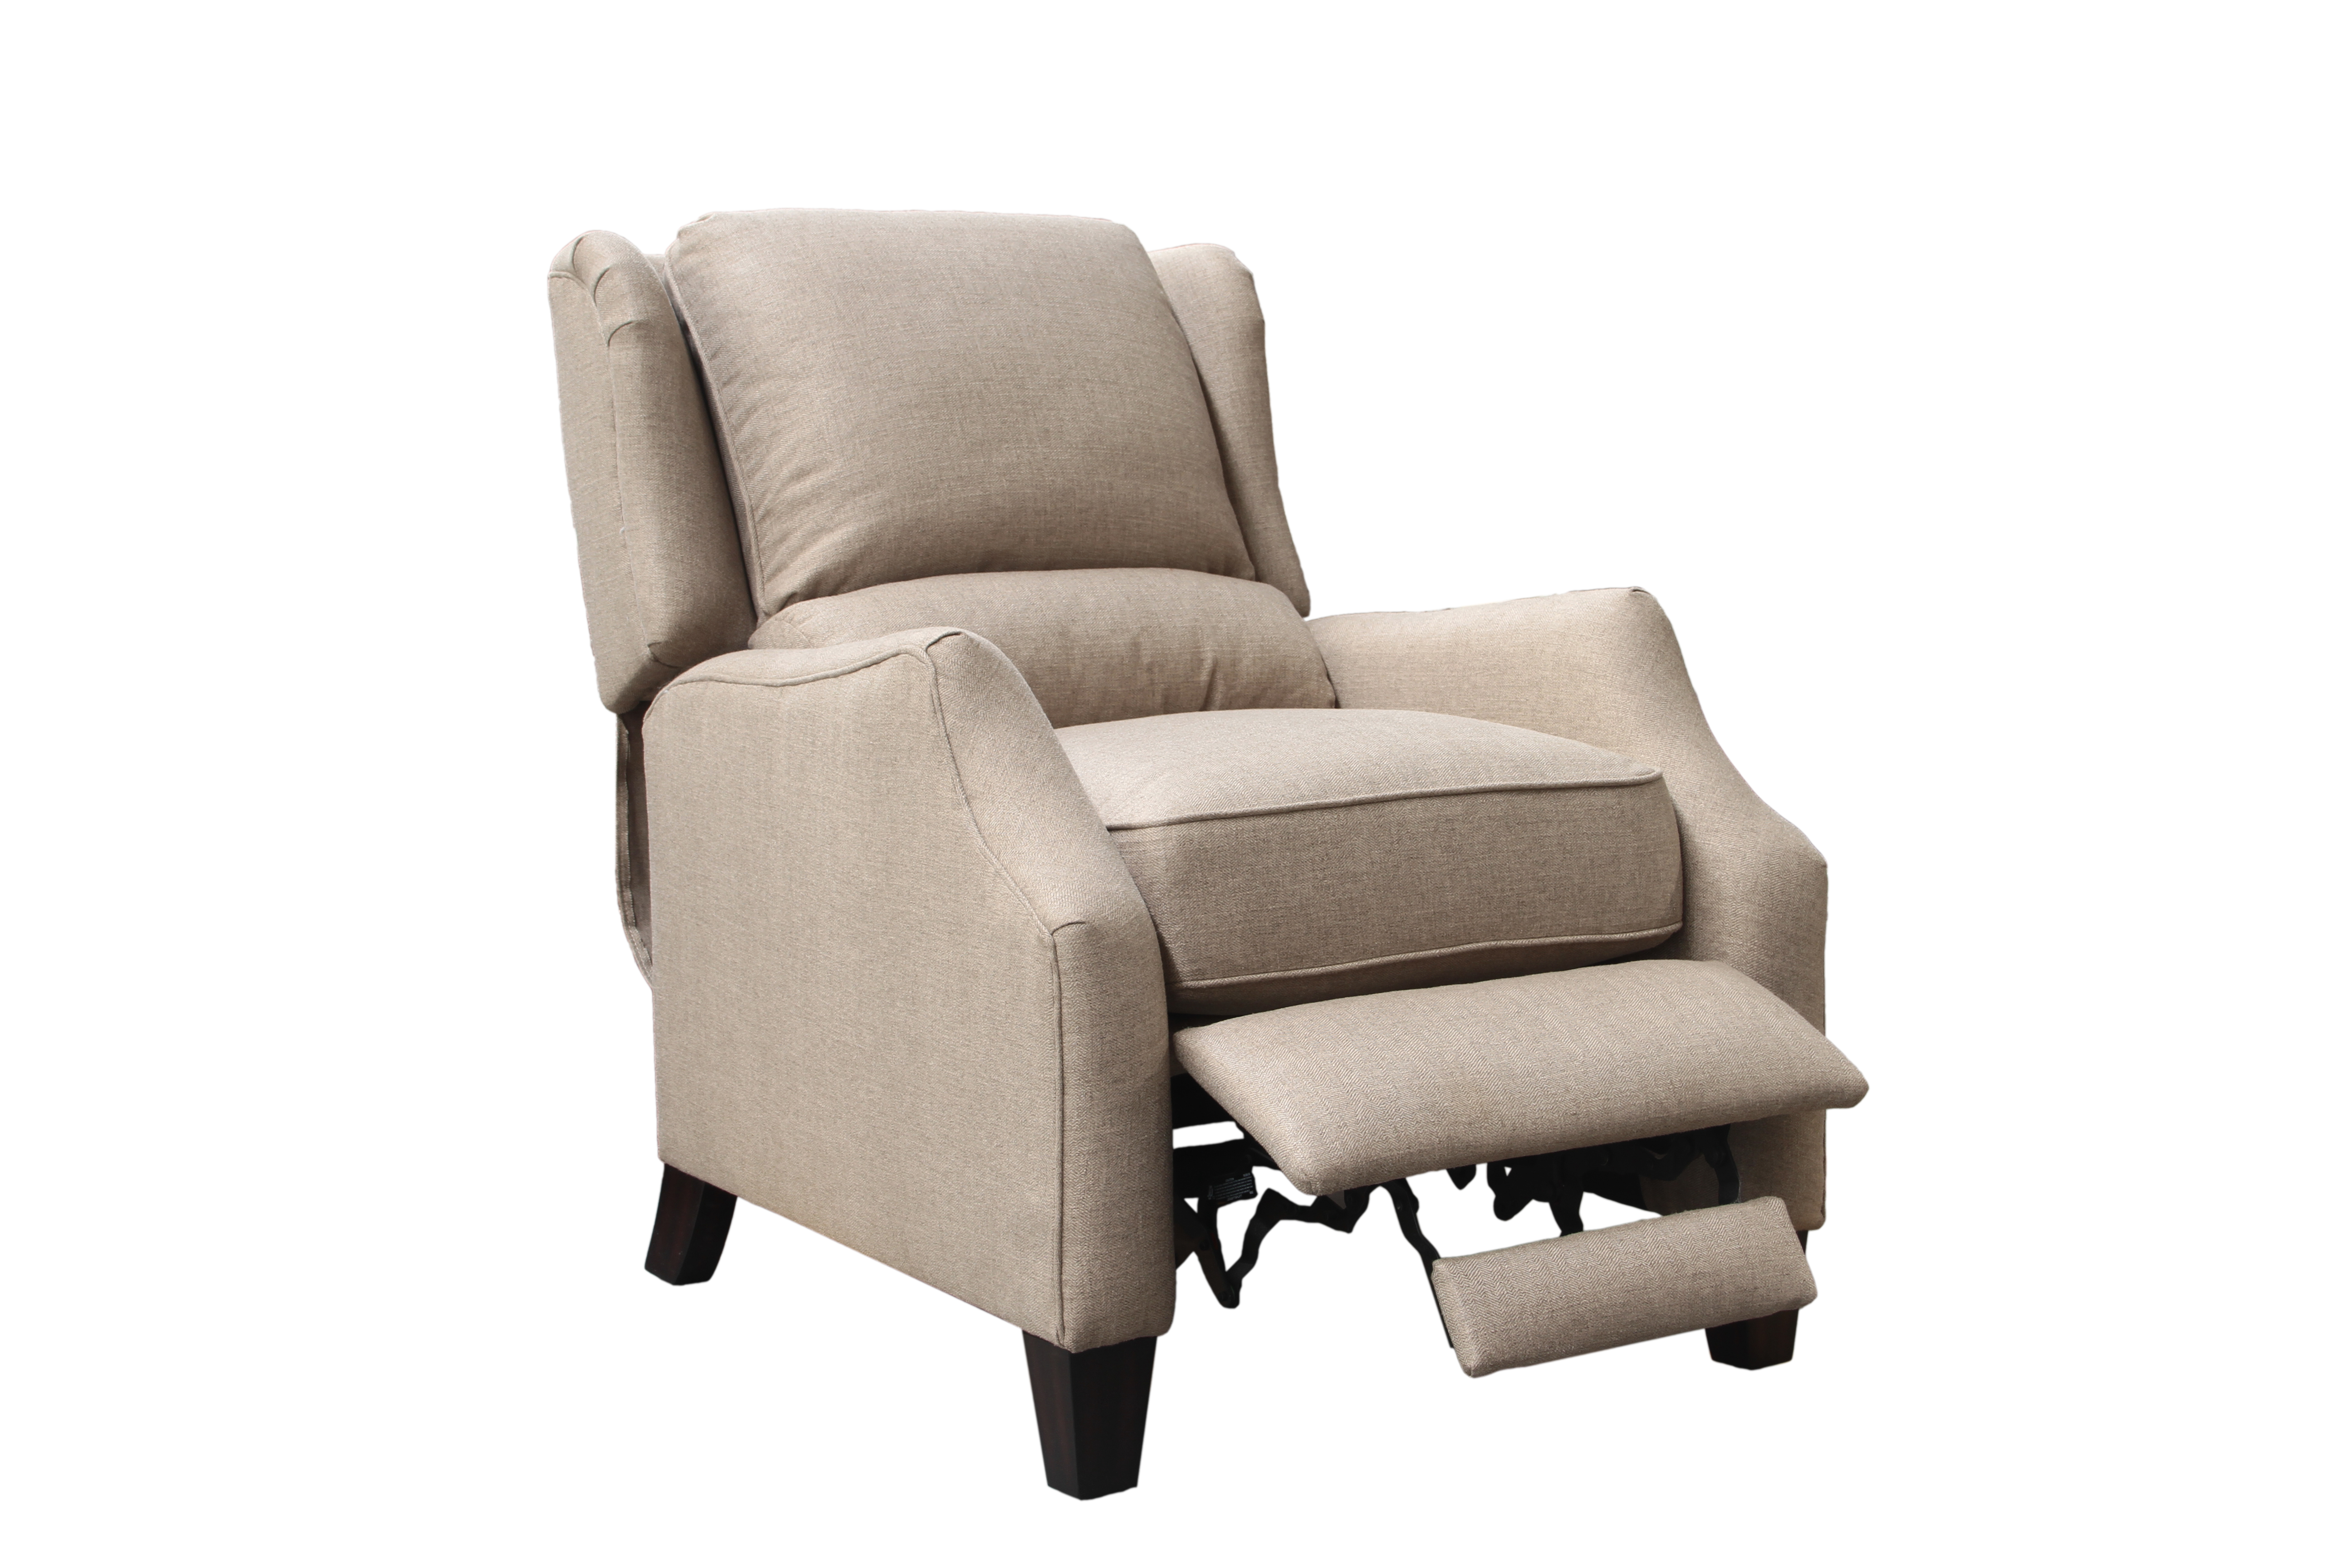 Enjoyable Berkeley Recliner In Stock Fast Free Shipping Sofas And Dailytribune Chair Design For Home Dailytribuneorg